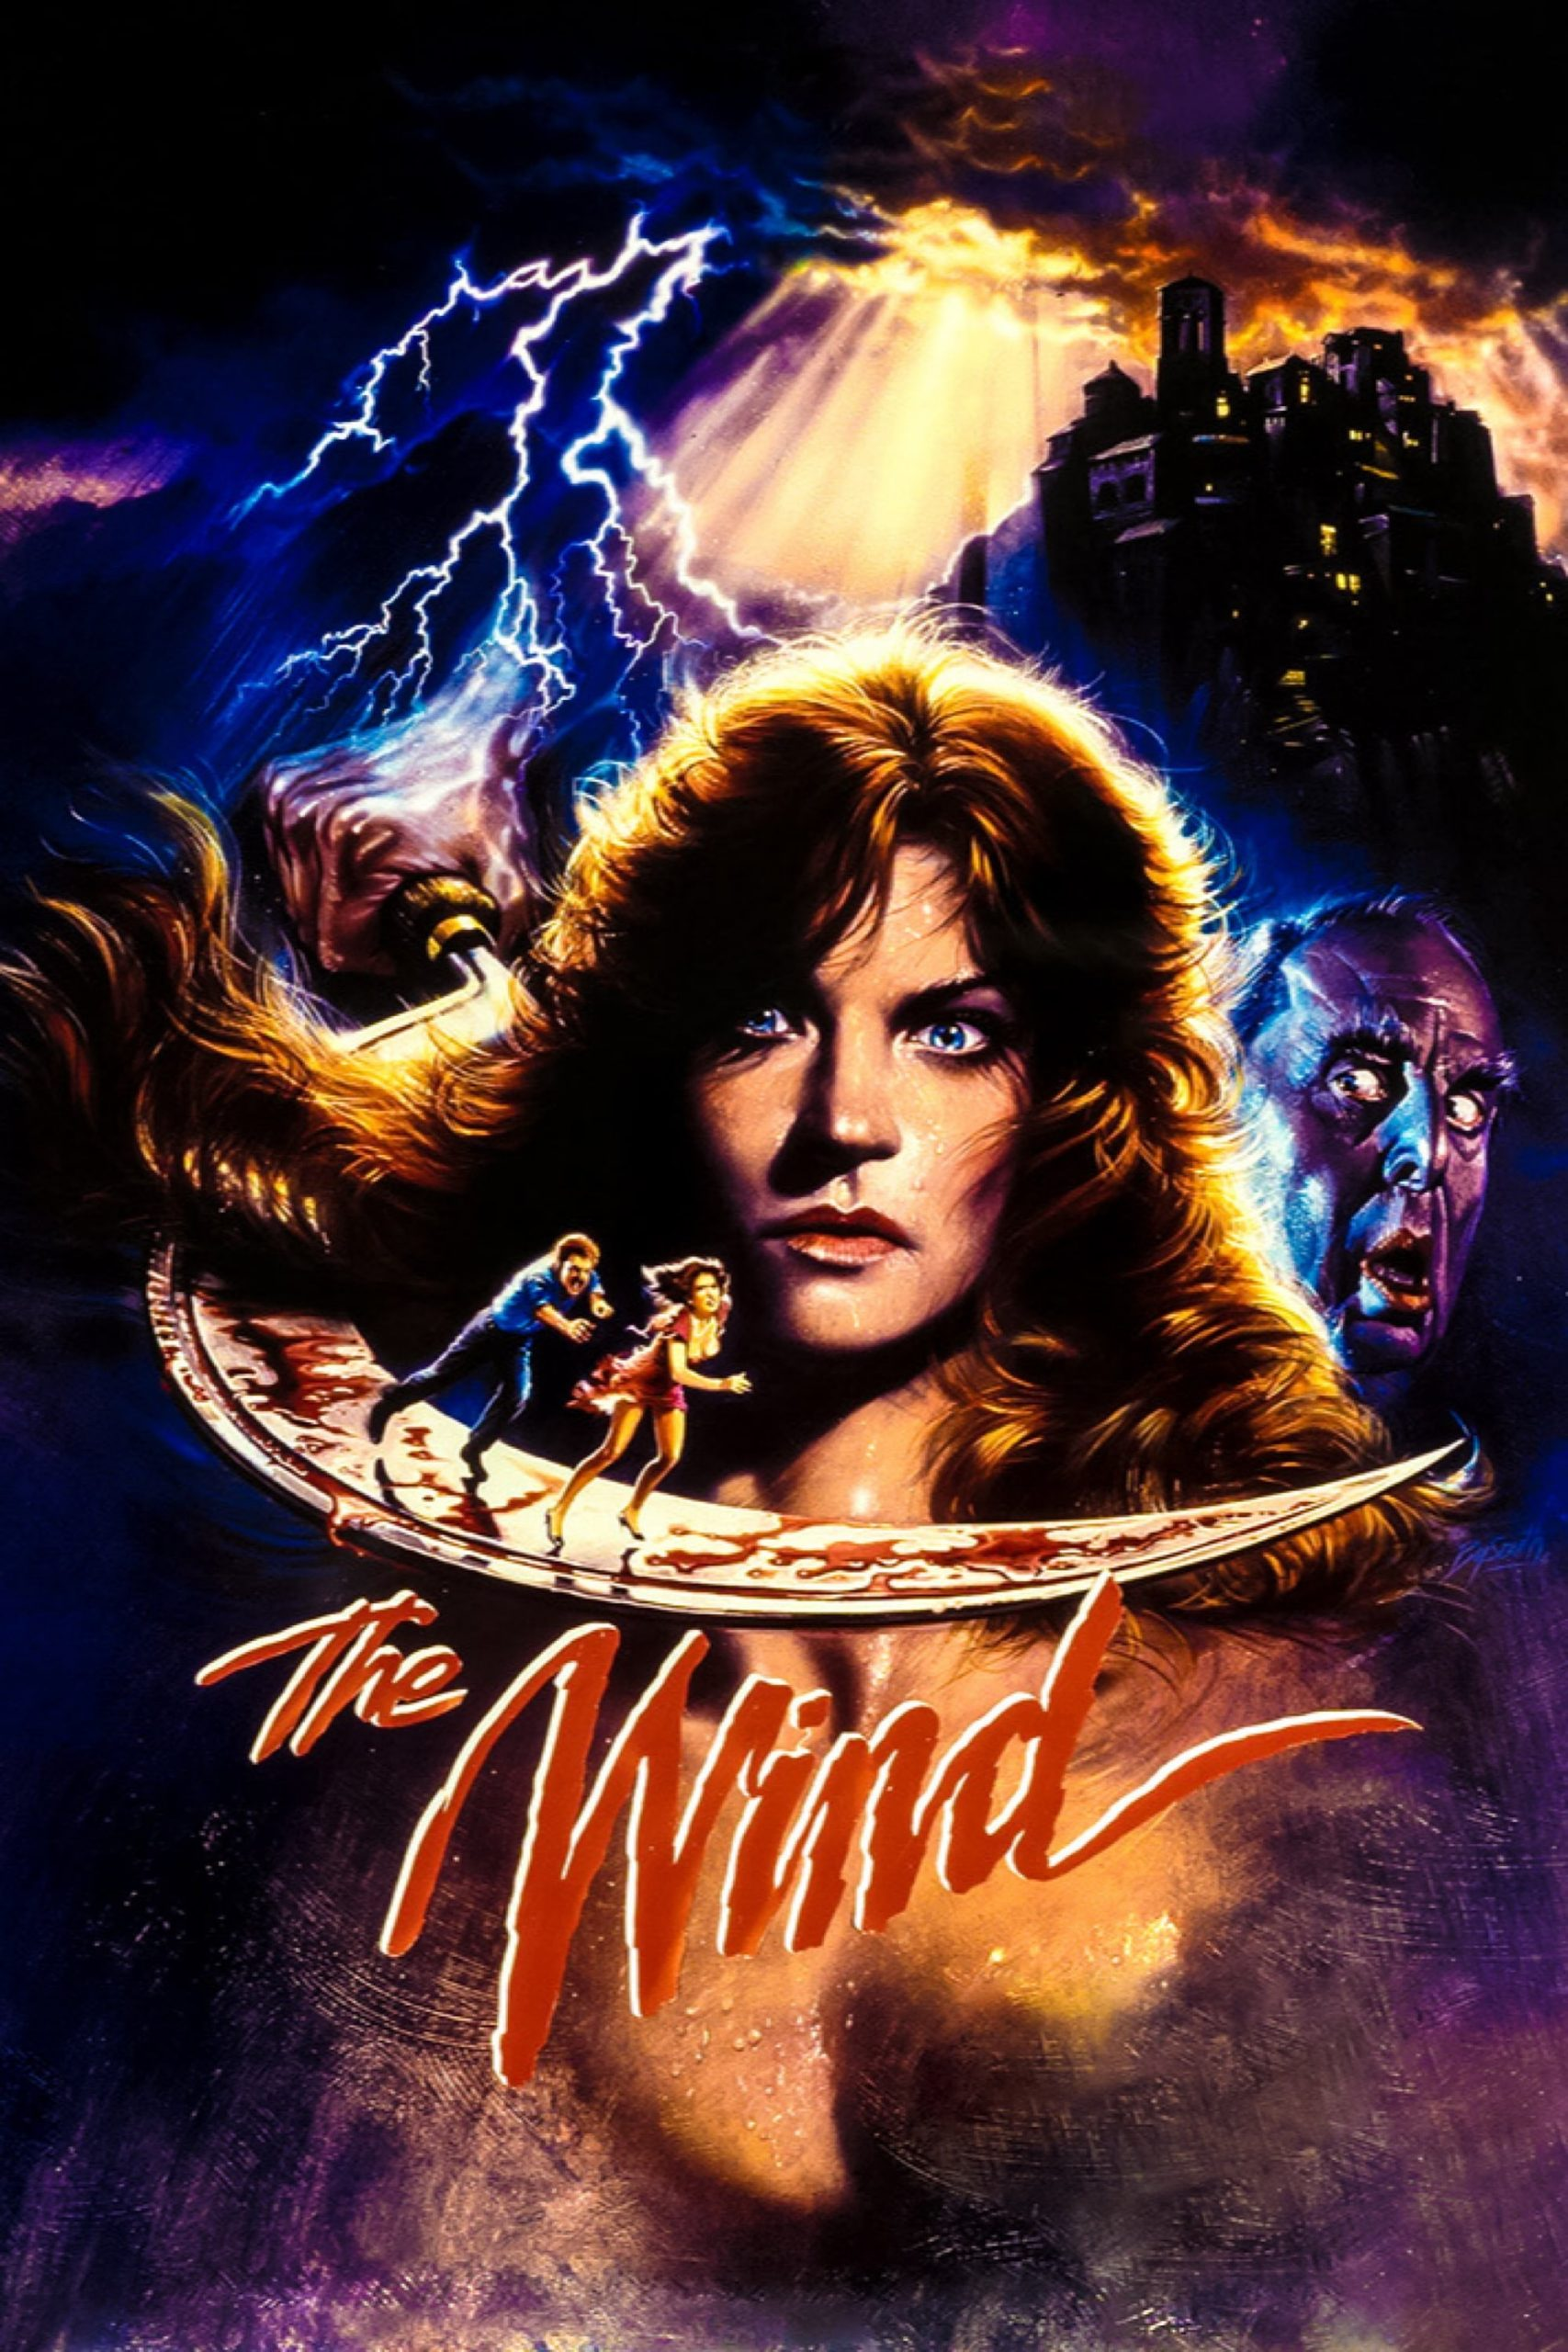 Poster for THE WIND